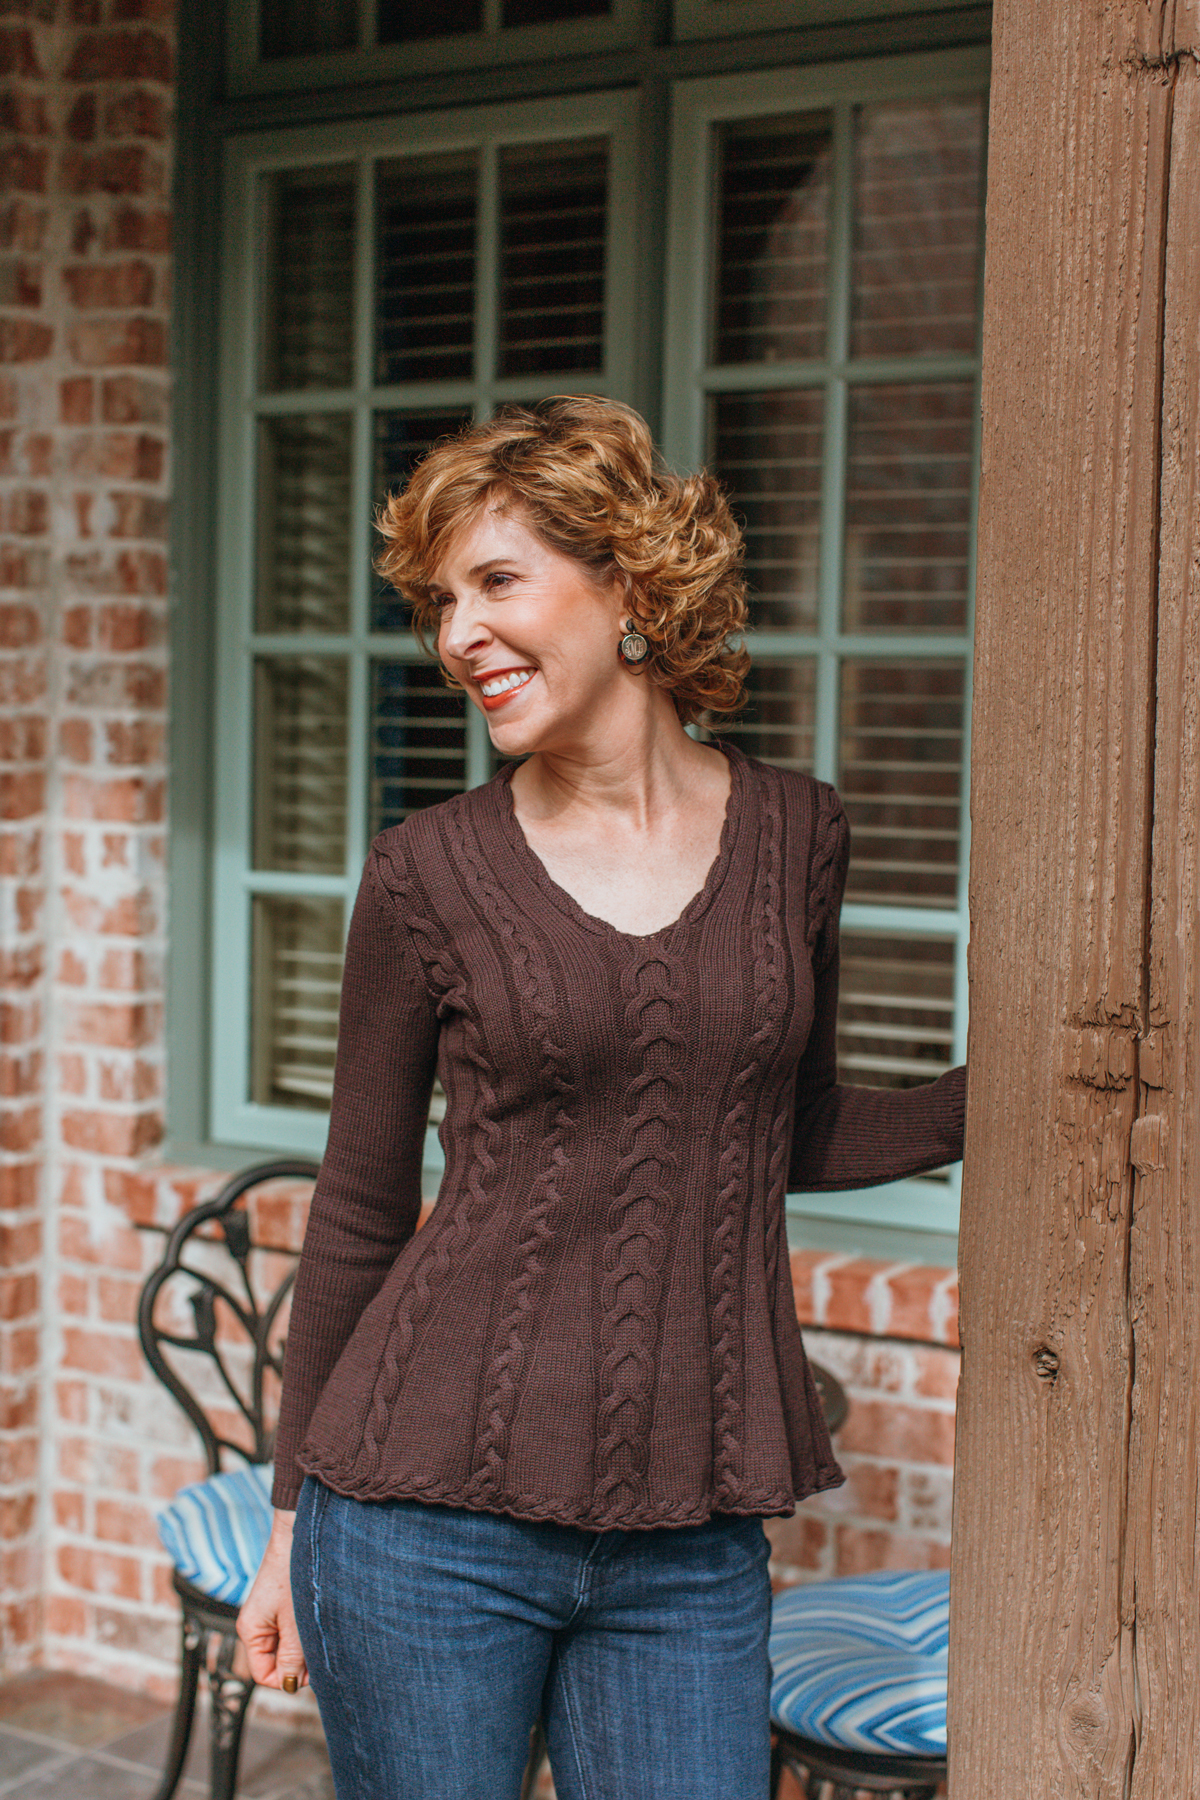 over 50 woman in brown sweater and blue jeans standing on a porch